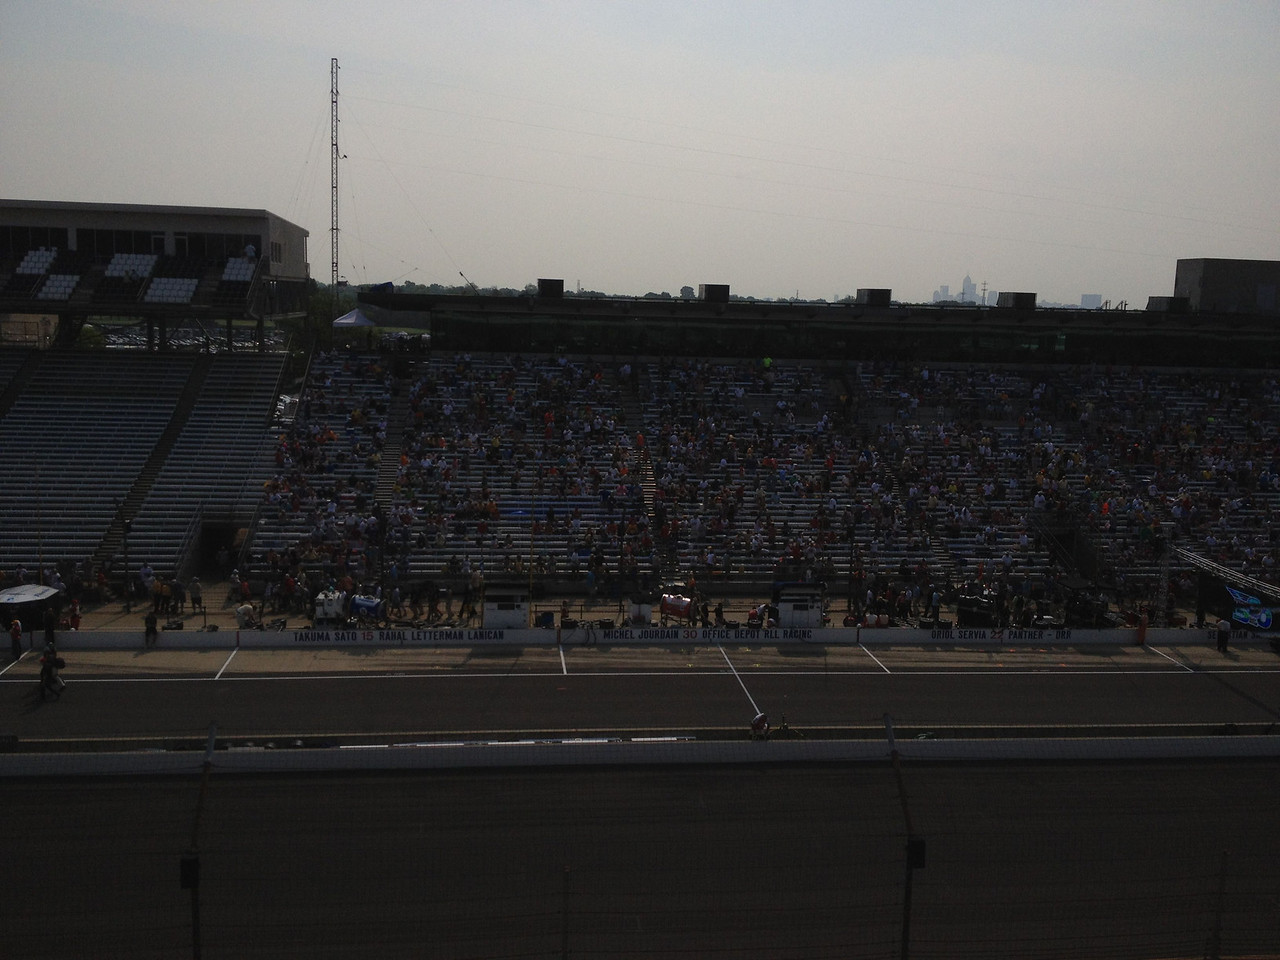 Indy carb day